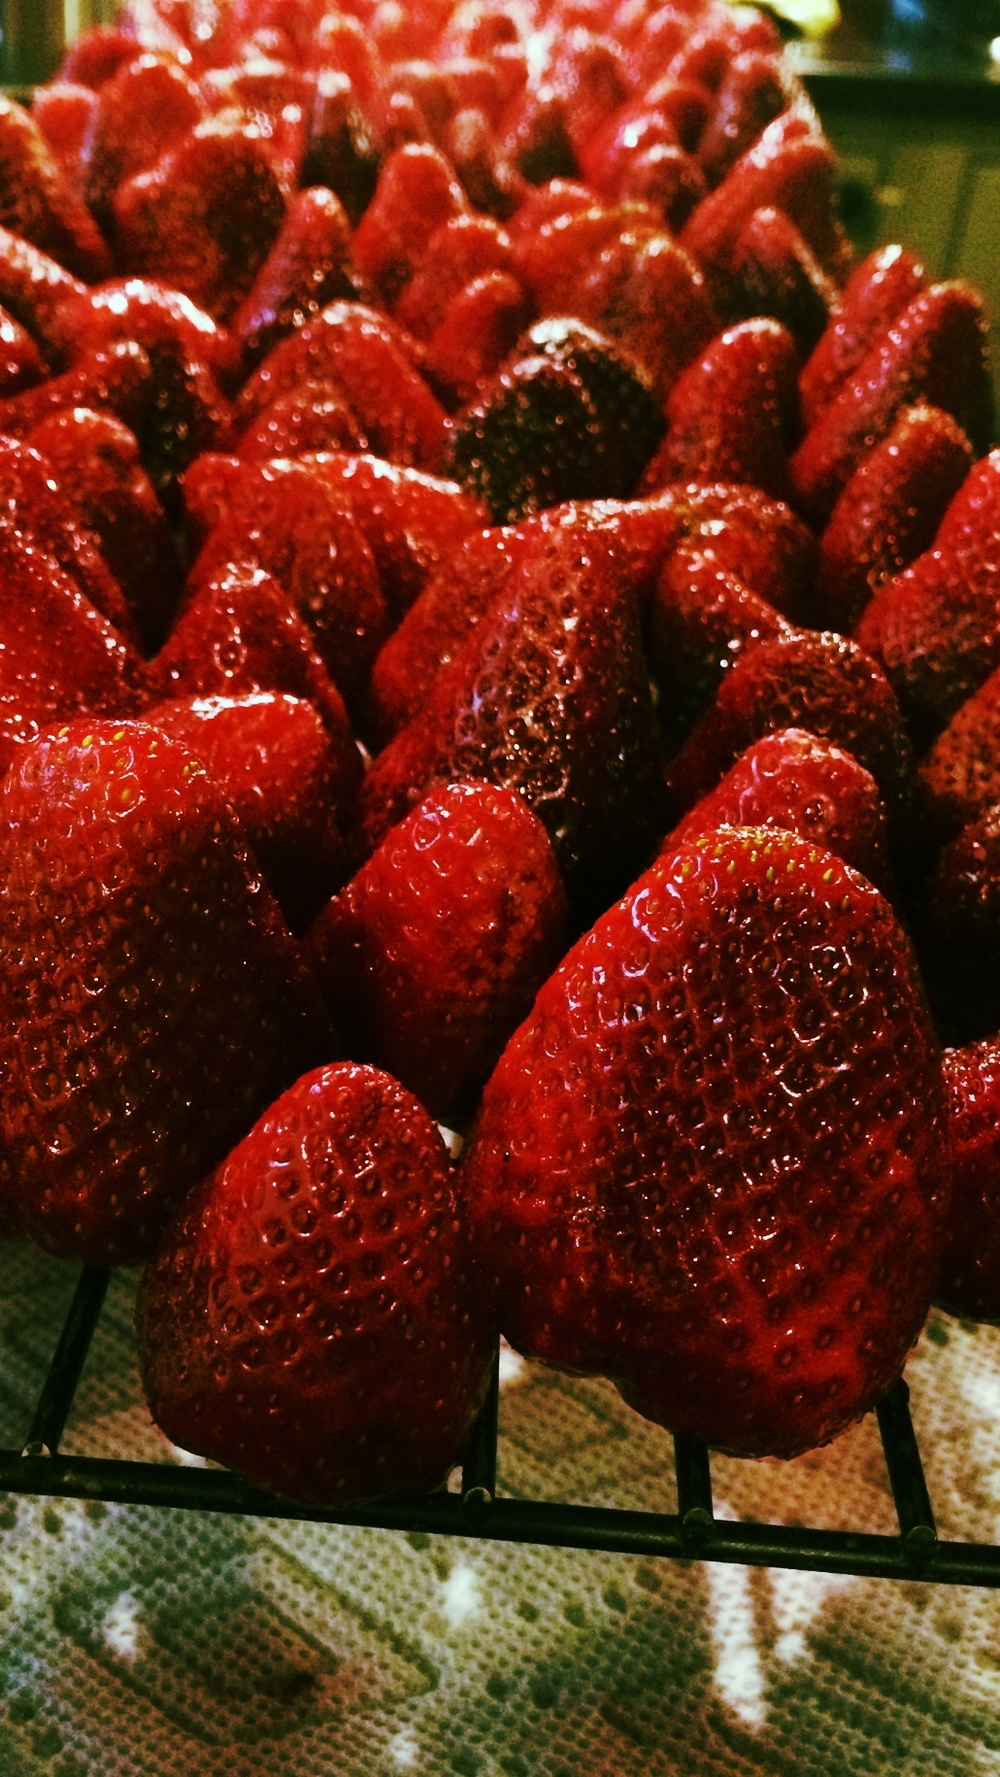 Processing Strawberries